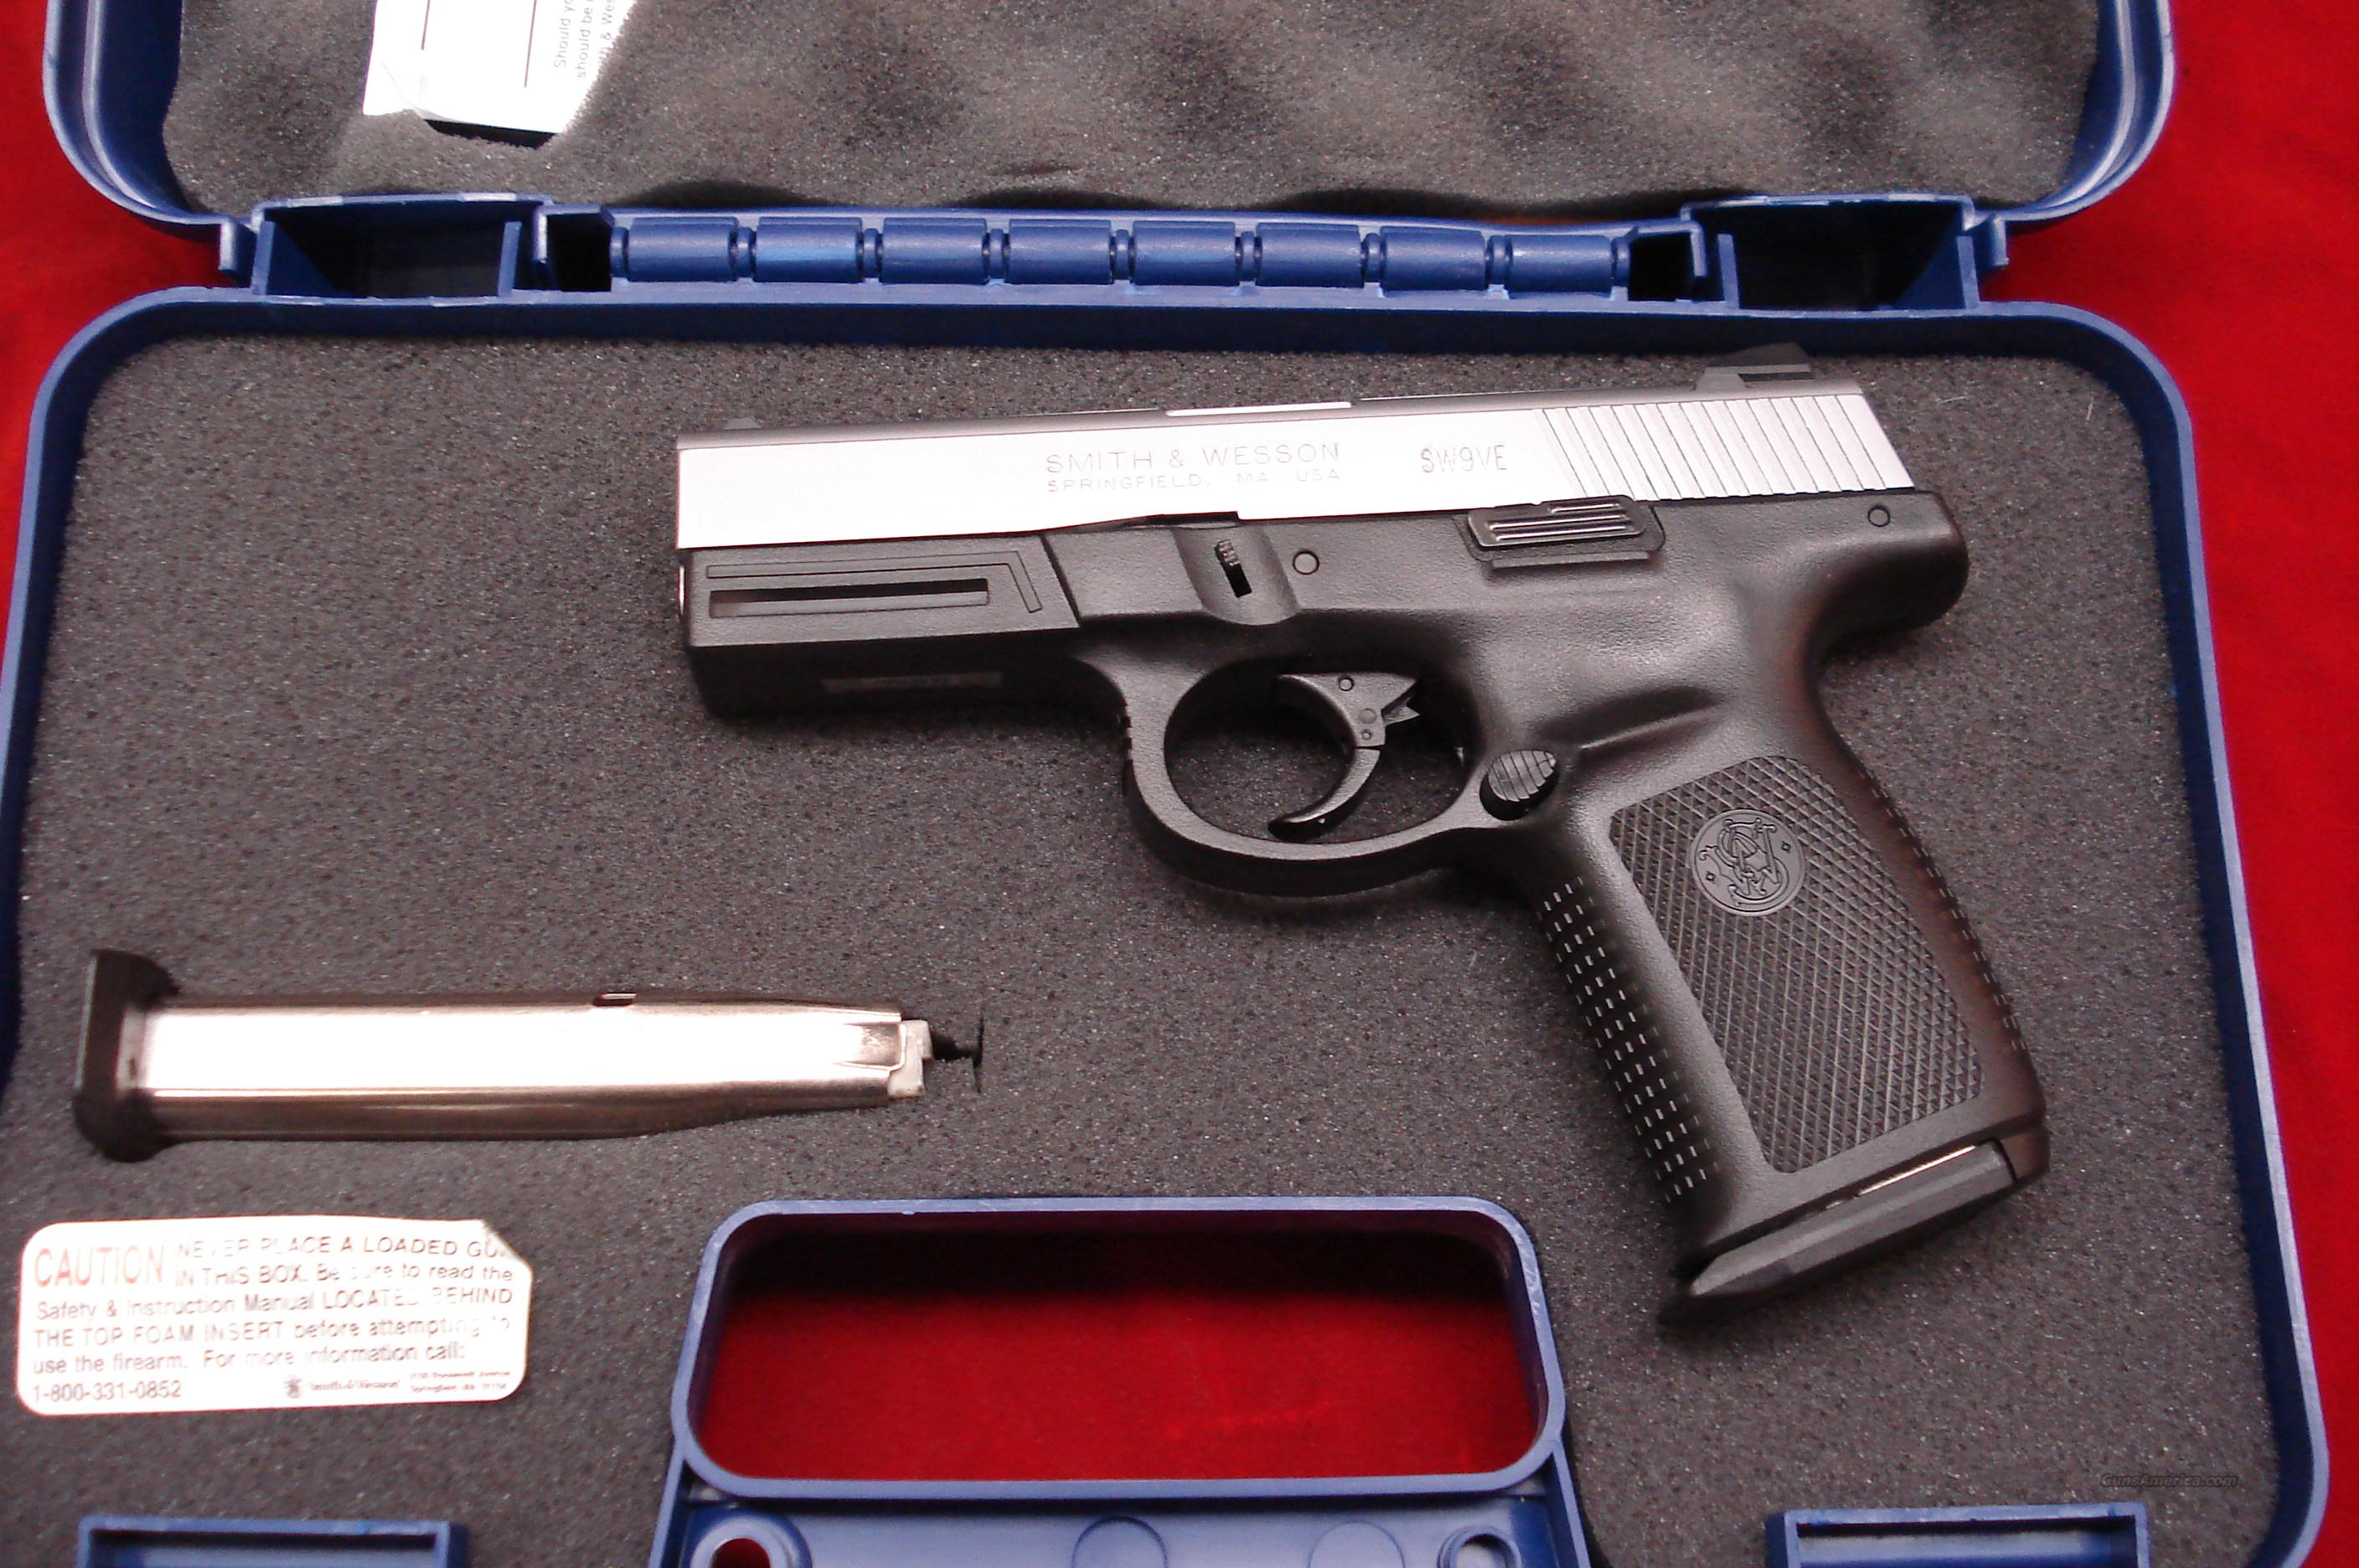 SMITH AND WESSON SIGMA STAINLESS 9MM HIGH CAPACITY LNIB   Guns > Pistols > Smith & Wesson Pistols - Autos > Polymer Frame